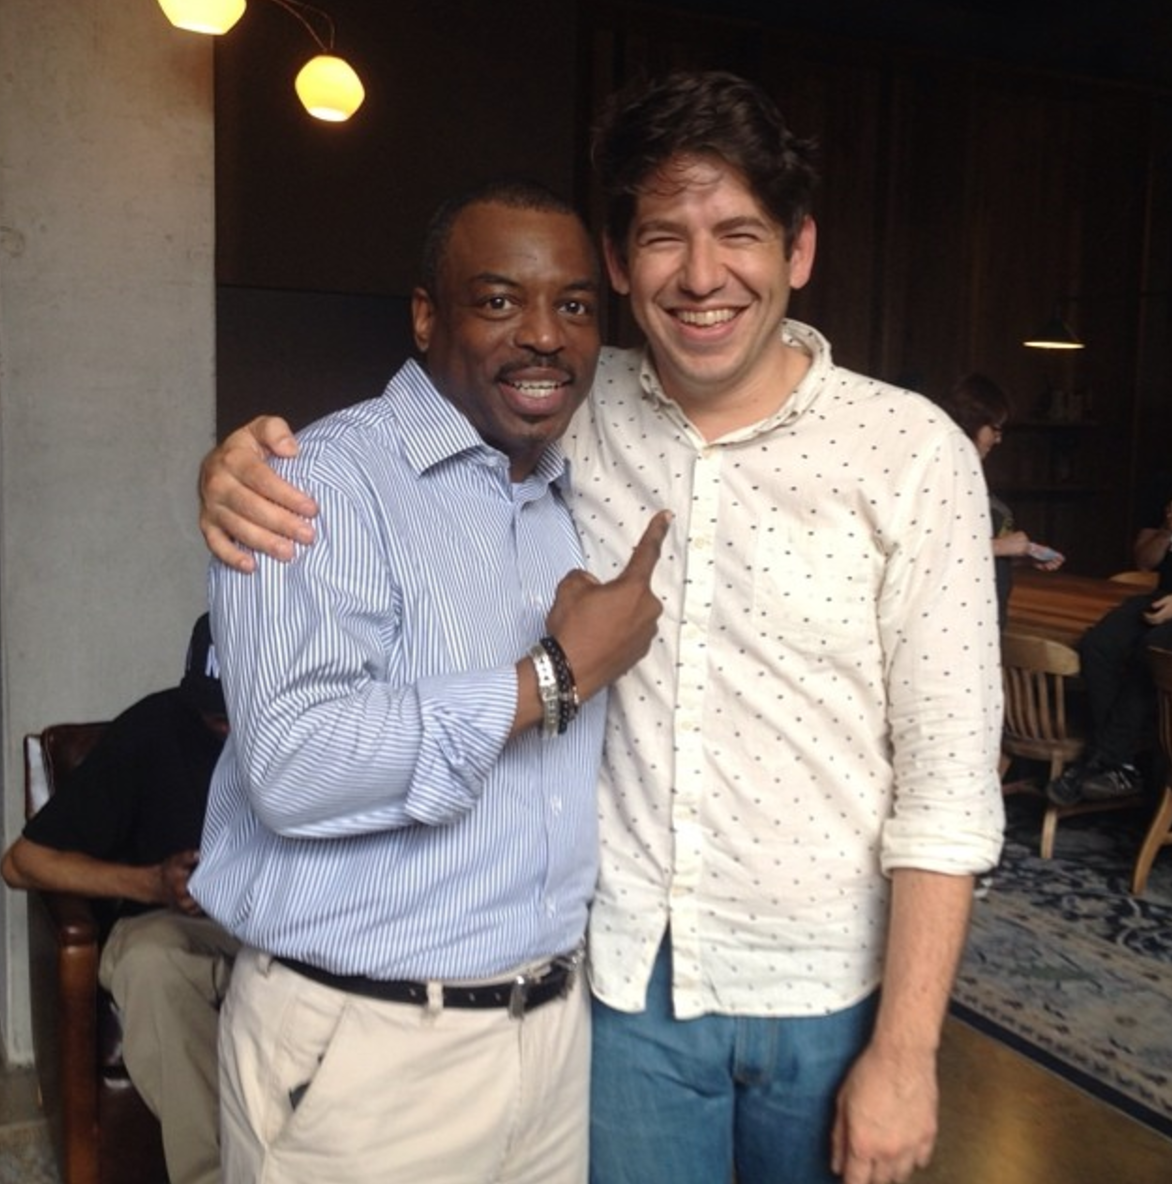 With LeVar Burton